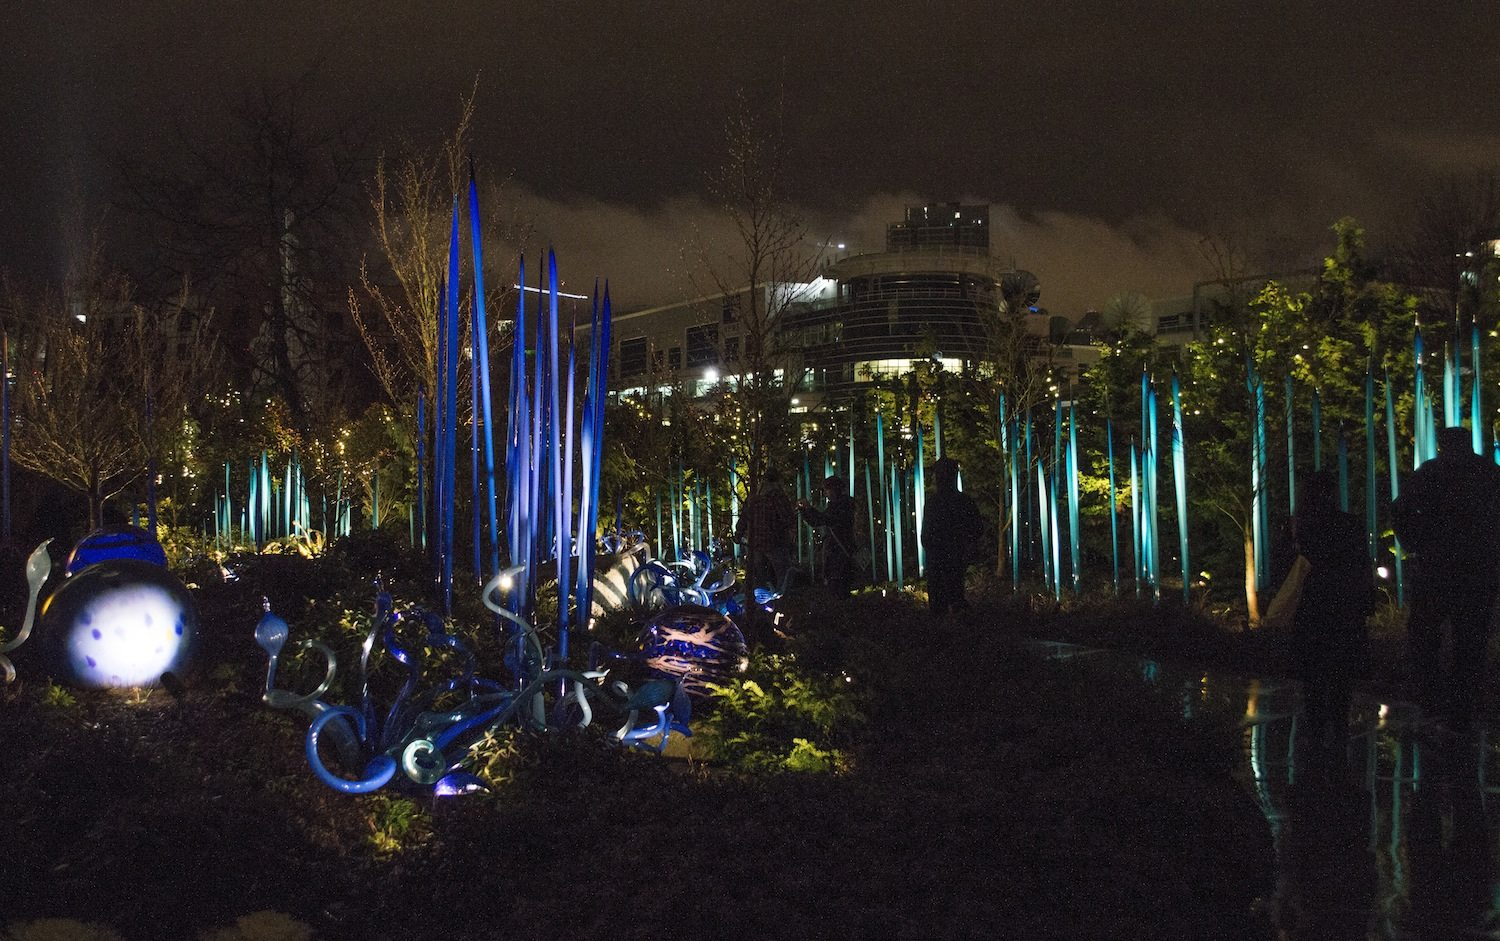 Chihuly Garden and Glass by Christina Guan